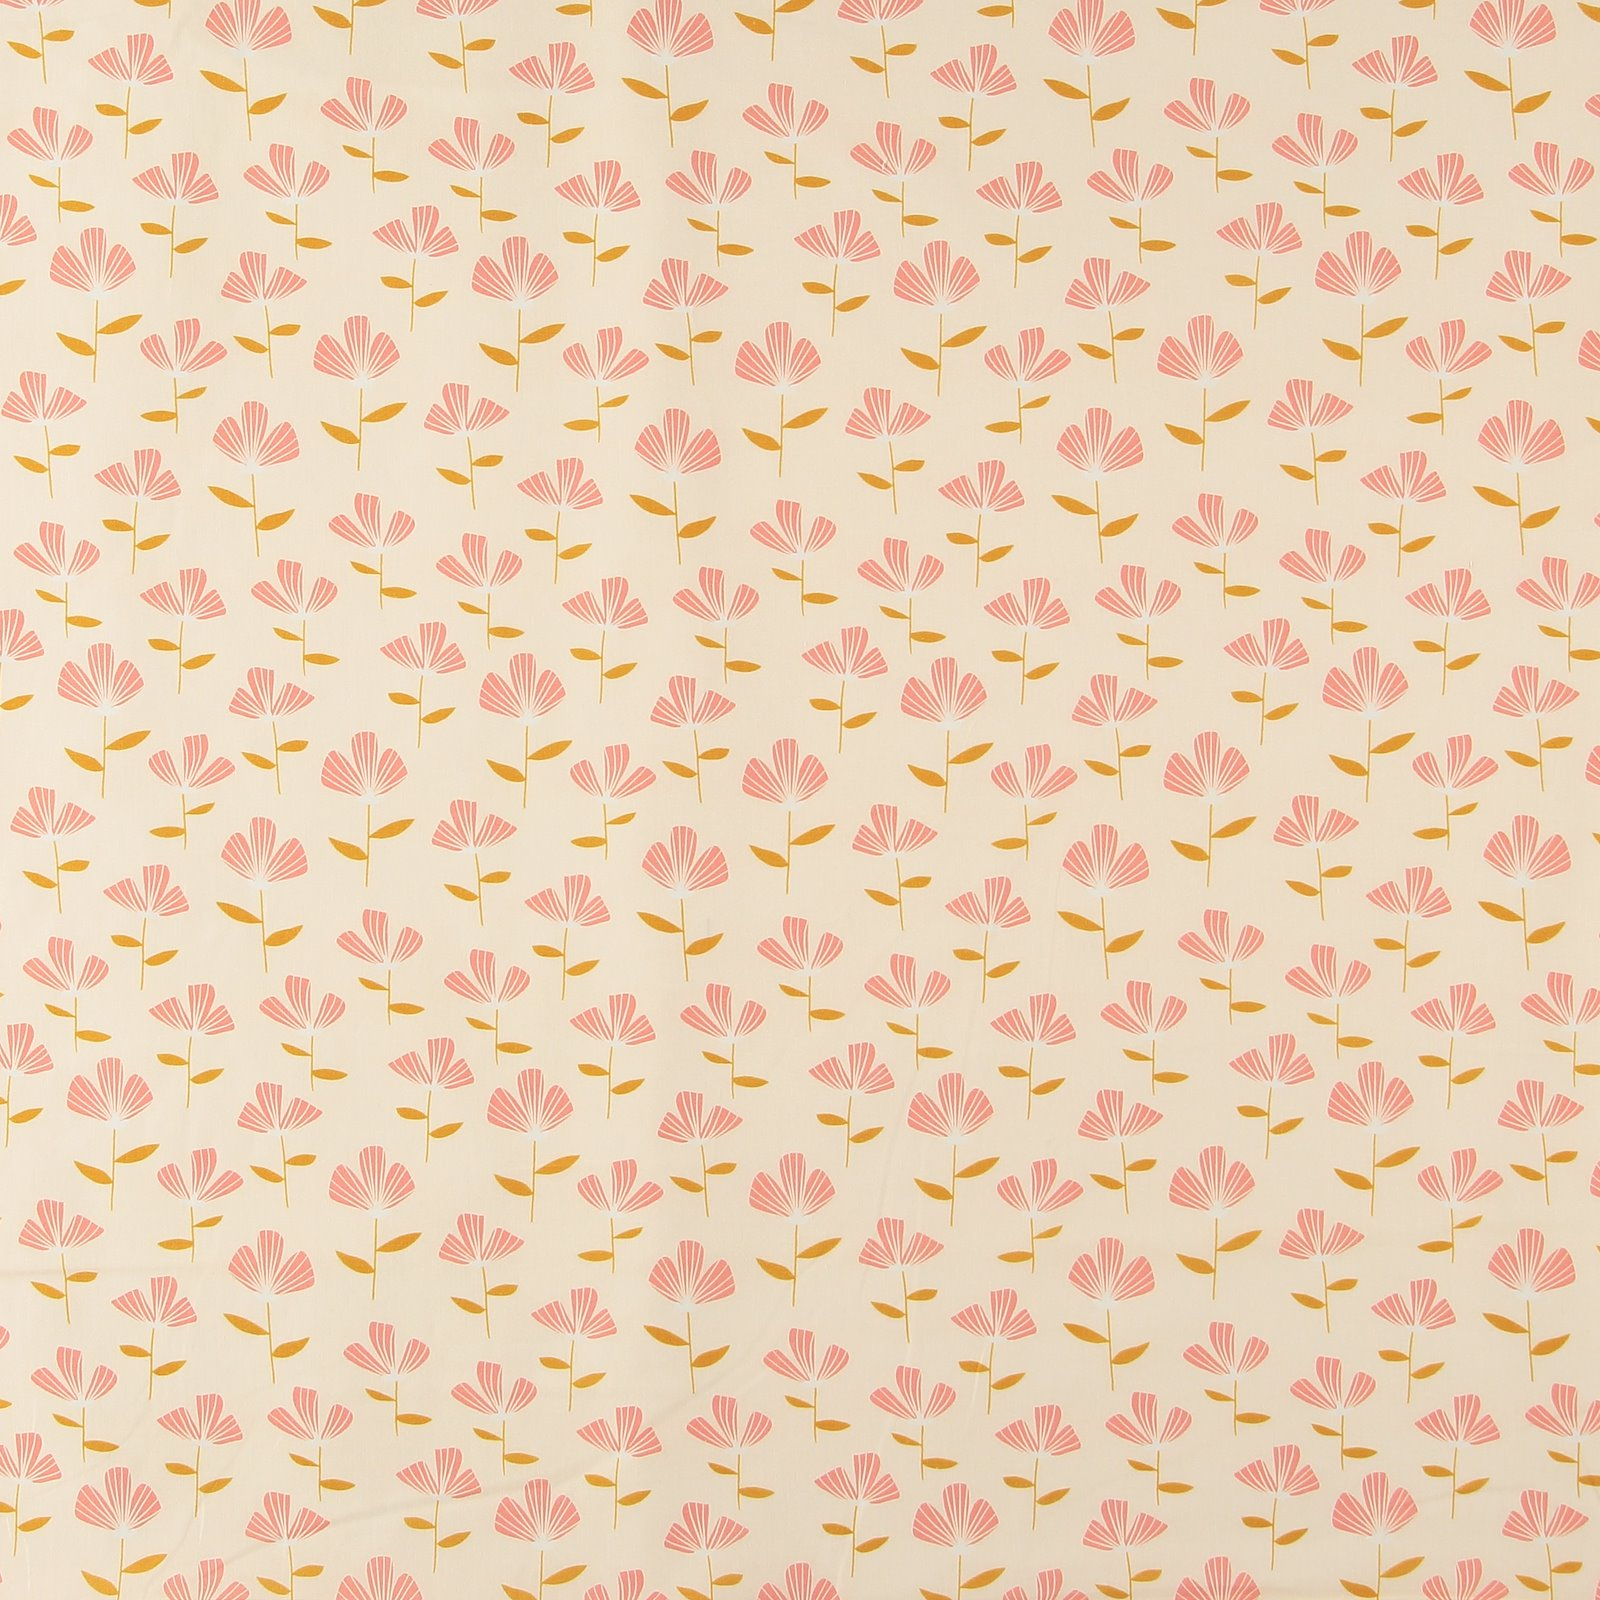 Woven cotton powder with flowers 780429_pack_sp